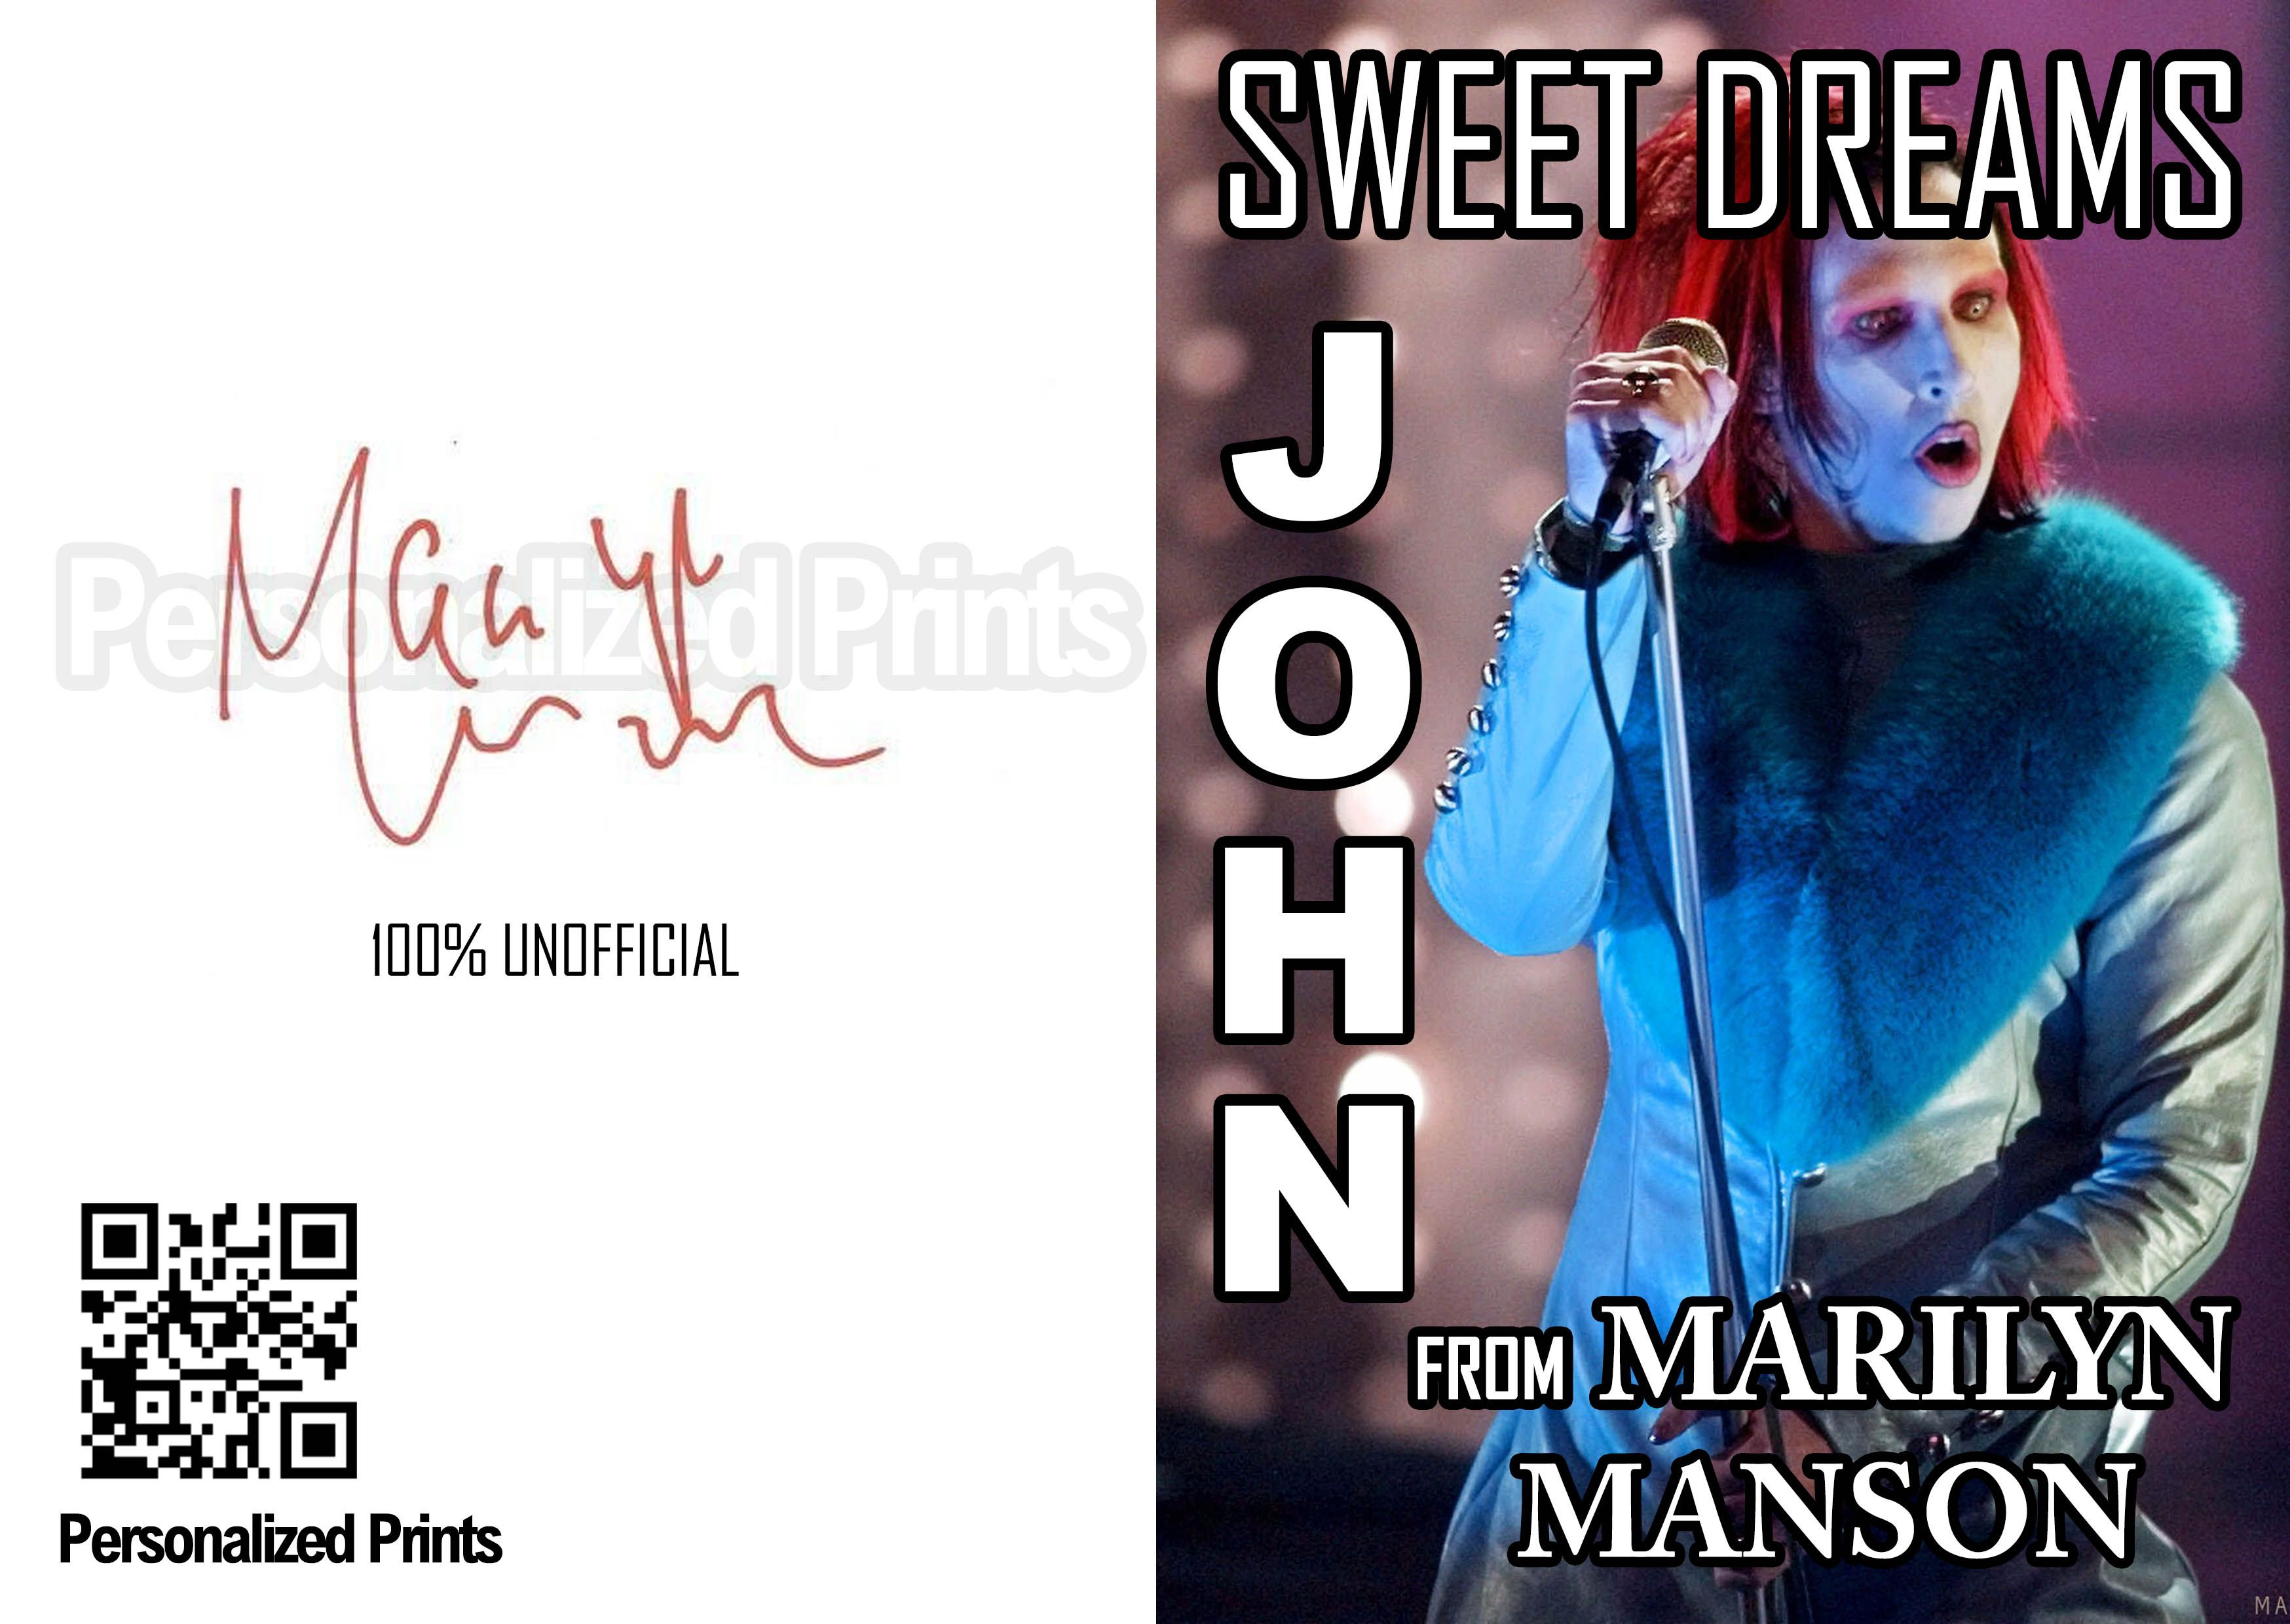 Marilyn manson greeting cards marilynmanson greetingcards marilyn manson greeting cards marilynmanson greetingcards birthdays bookmarktalkfo Images